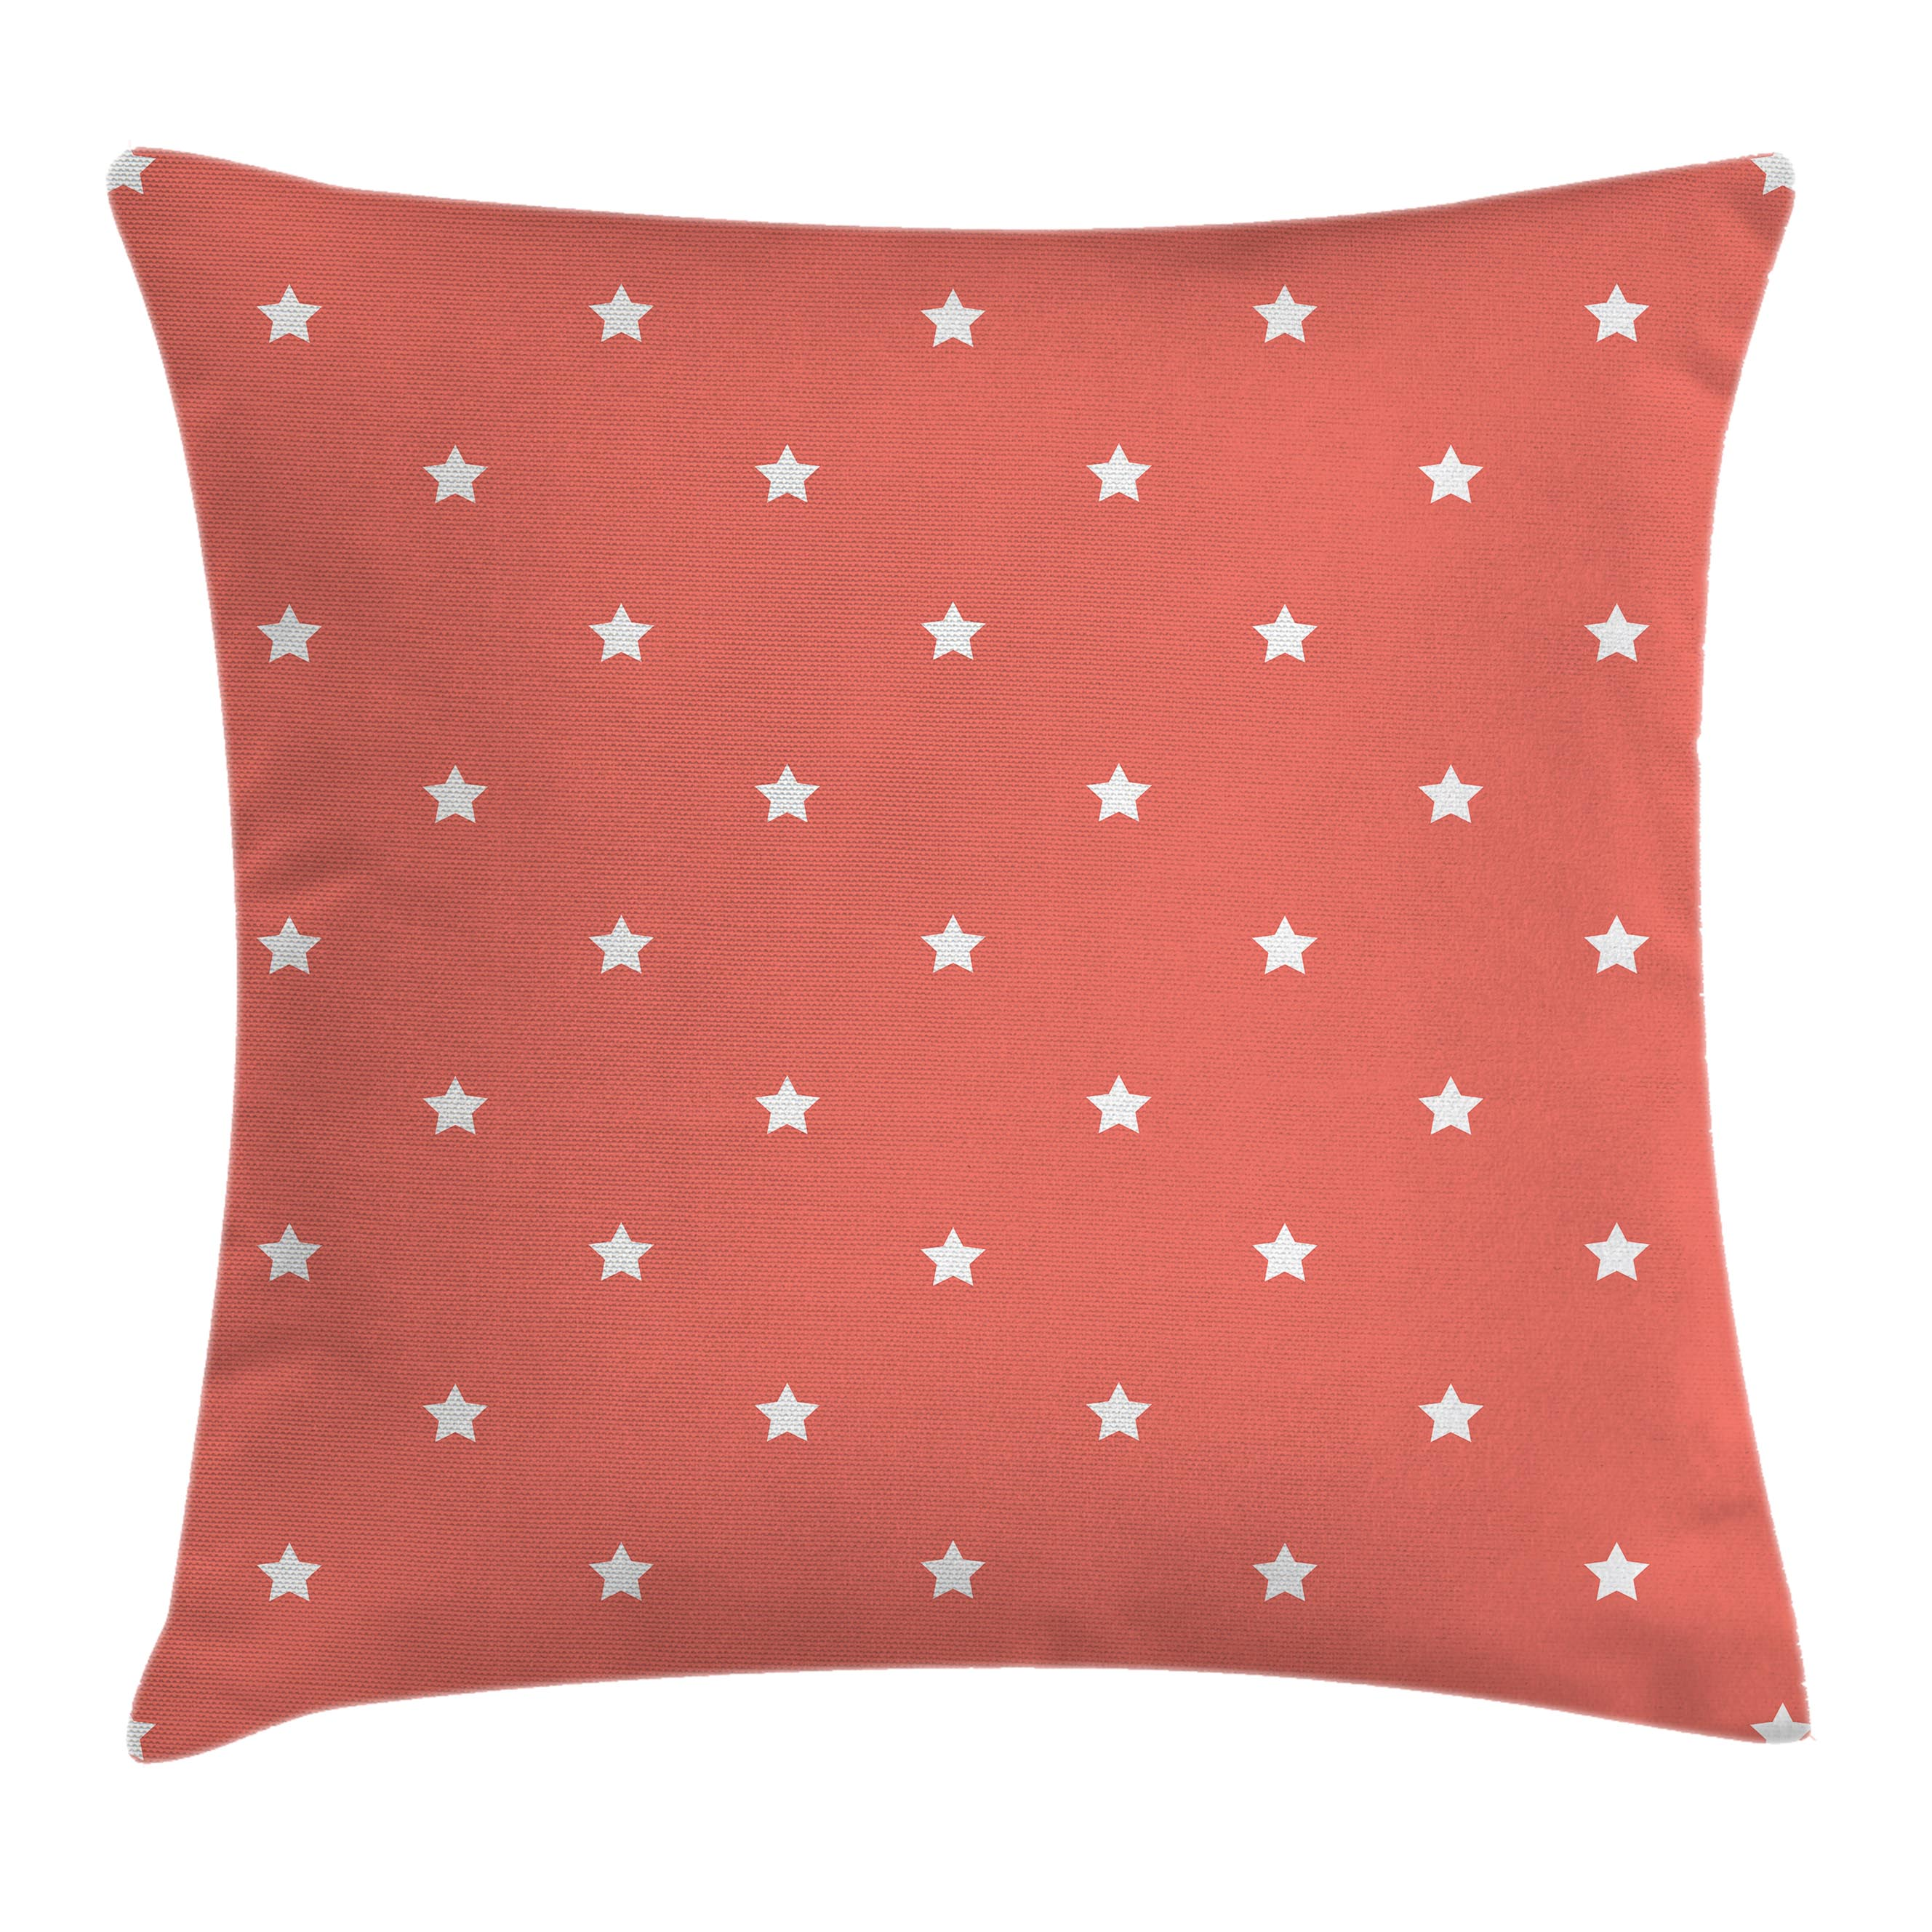 Coral Throw Pillow Cushion Cover Minimalist Neat Star on